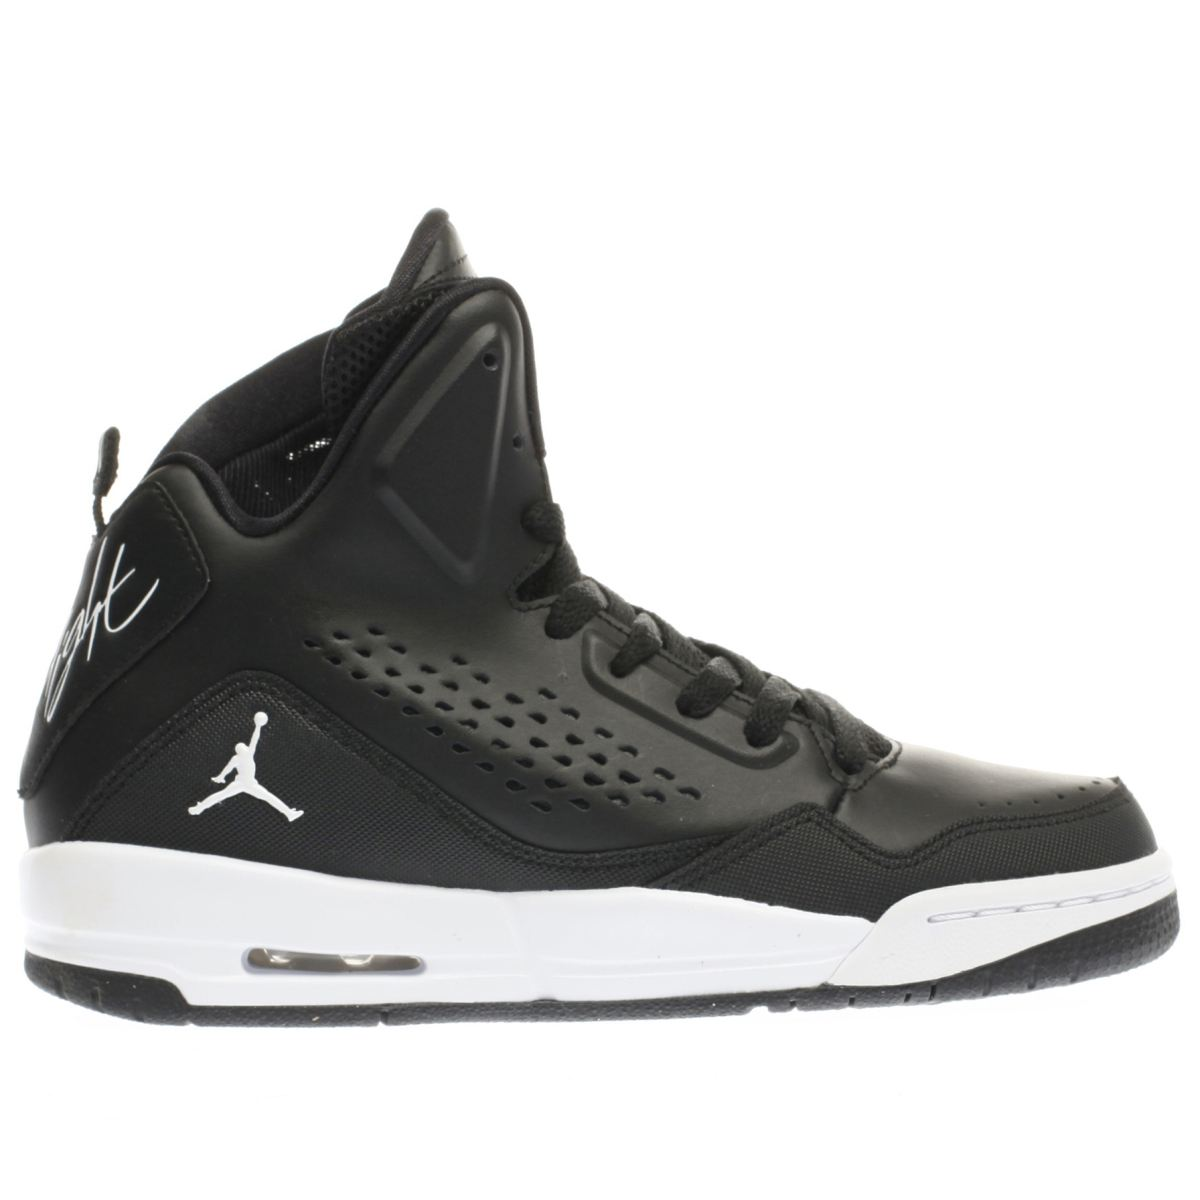 nike jordan black sc-3 Boys Youth Trainers